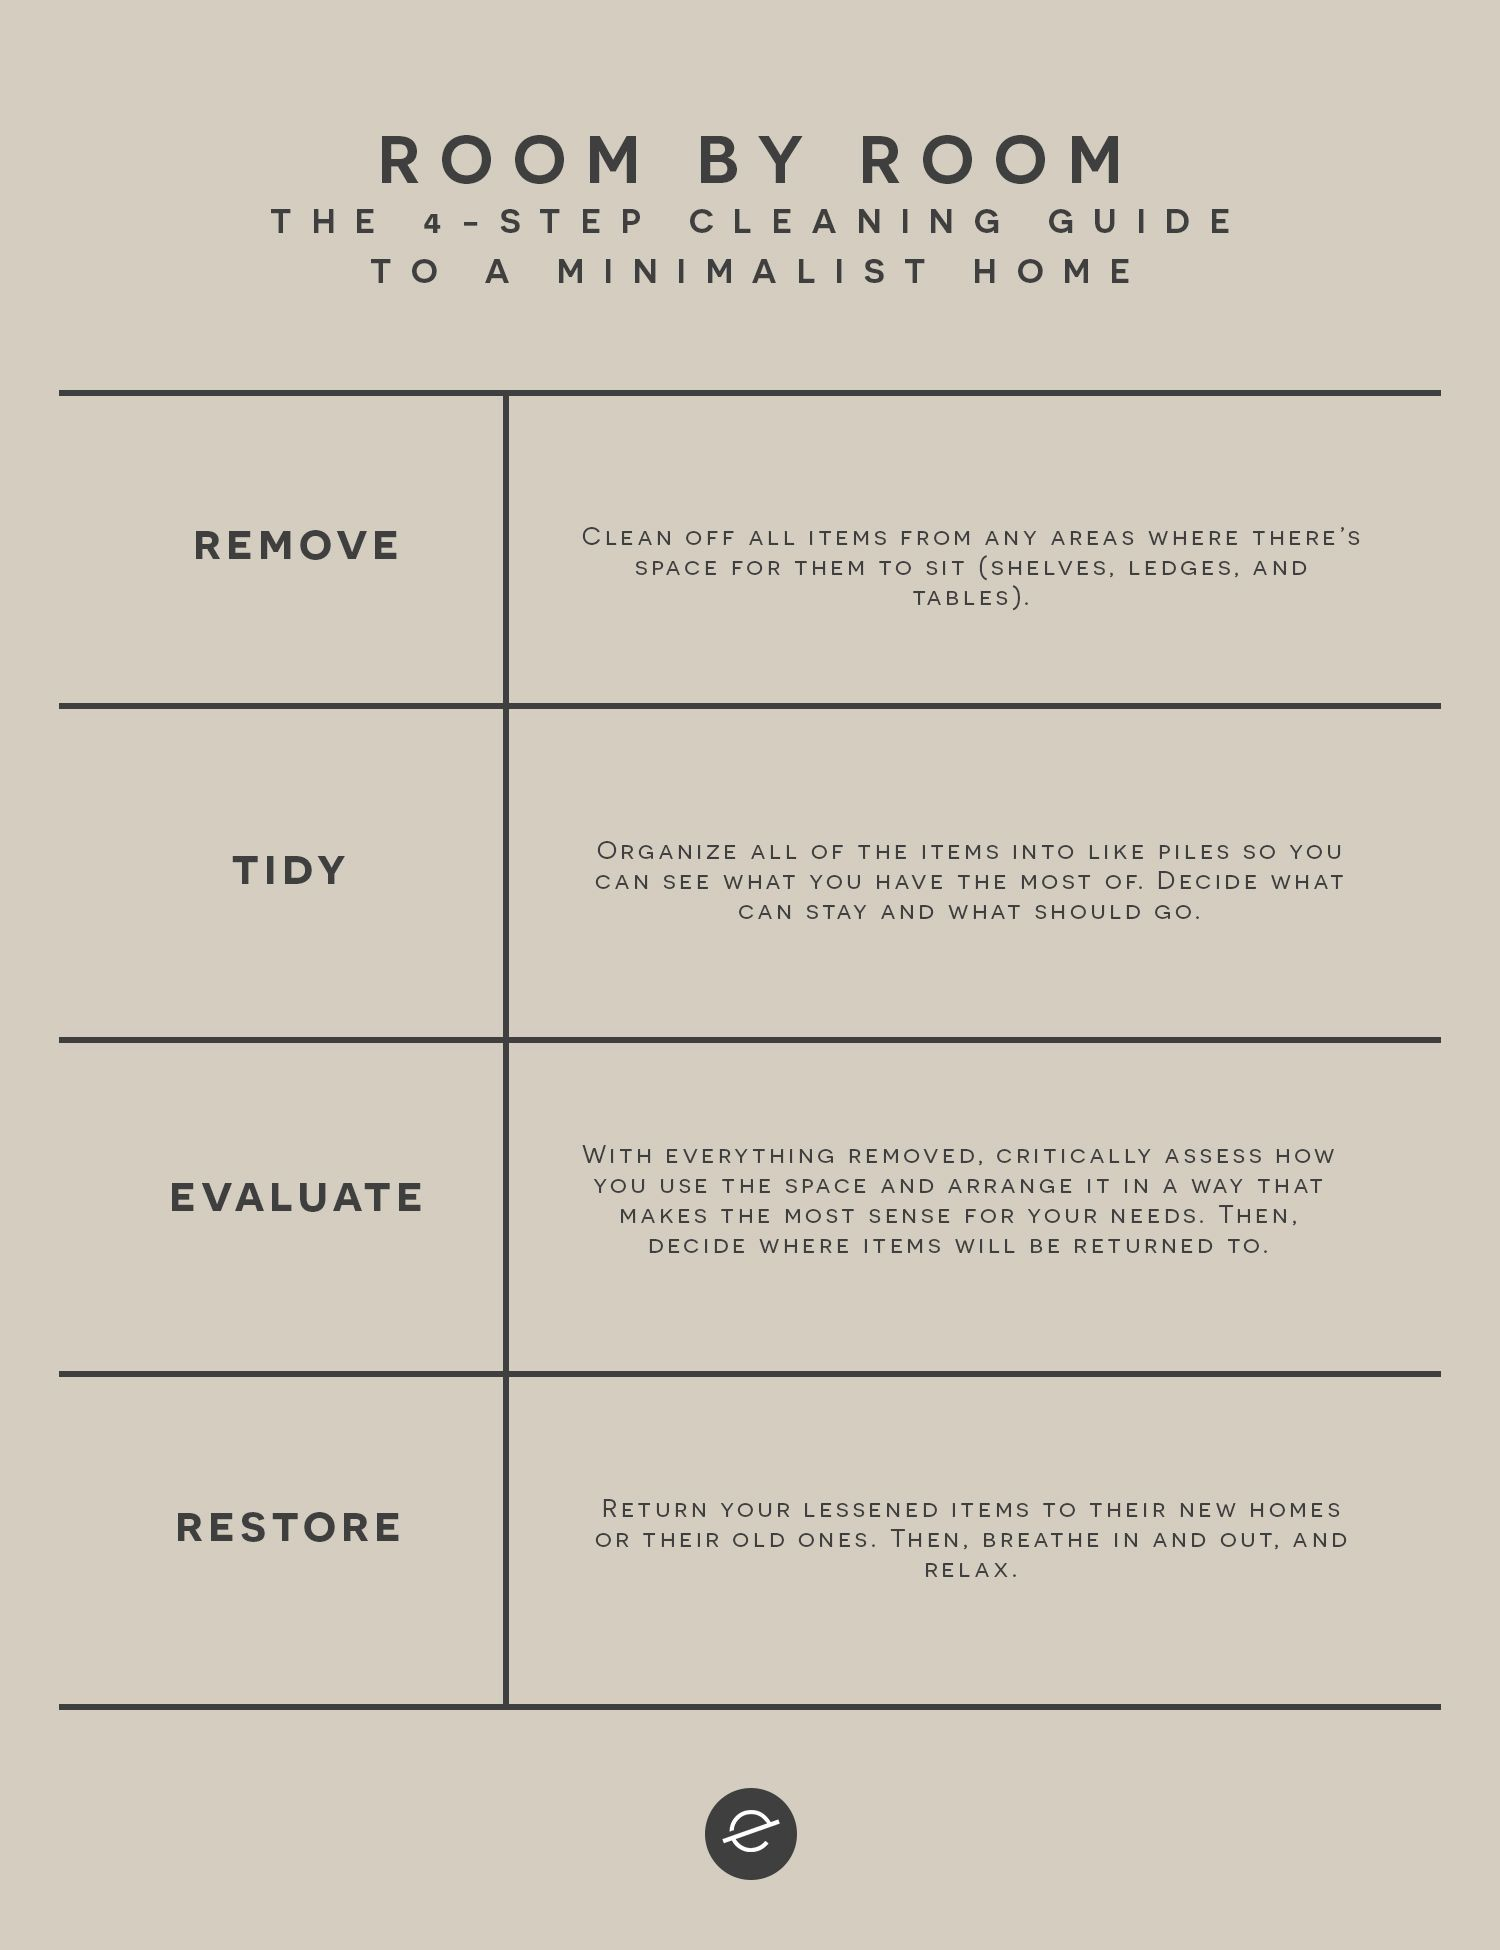 Room by Room The 4 Step Checklist to a Minimalist Home